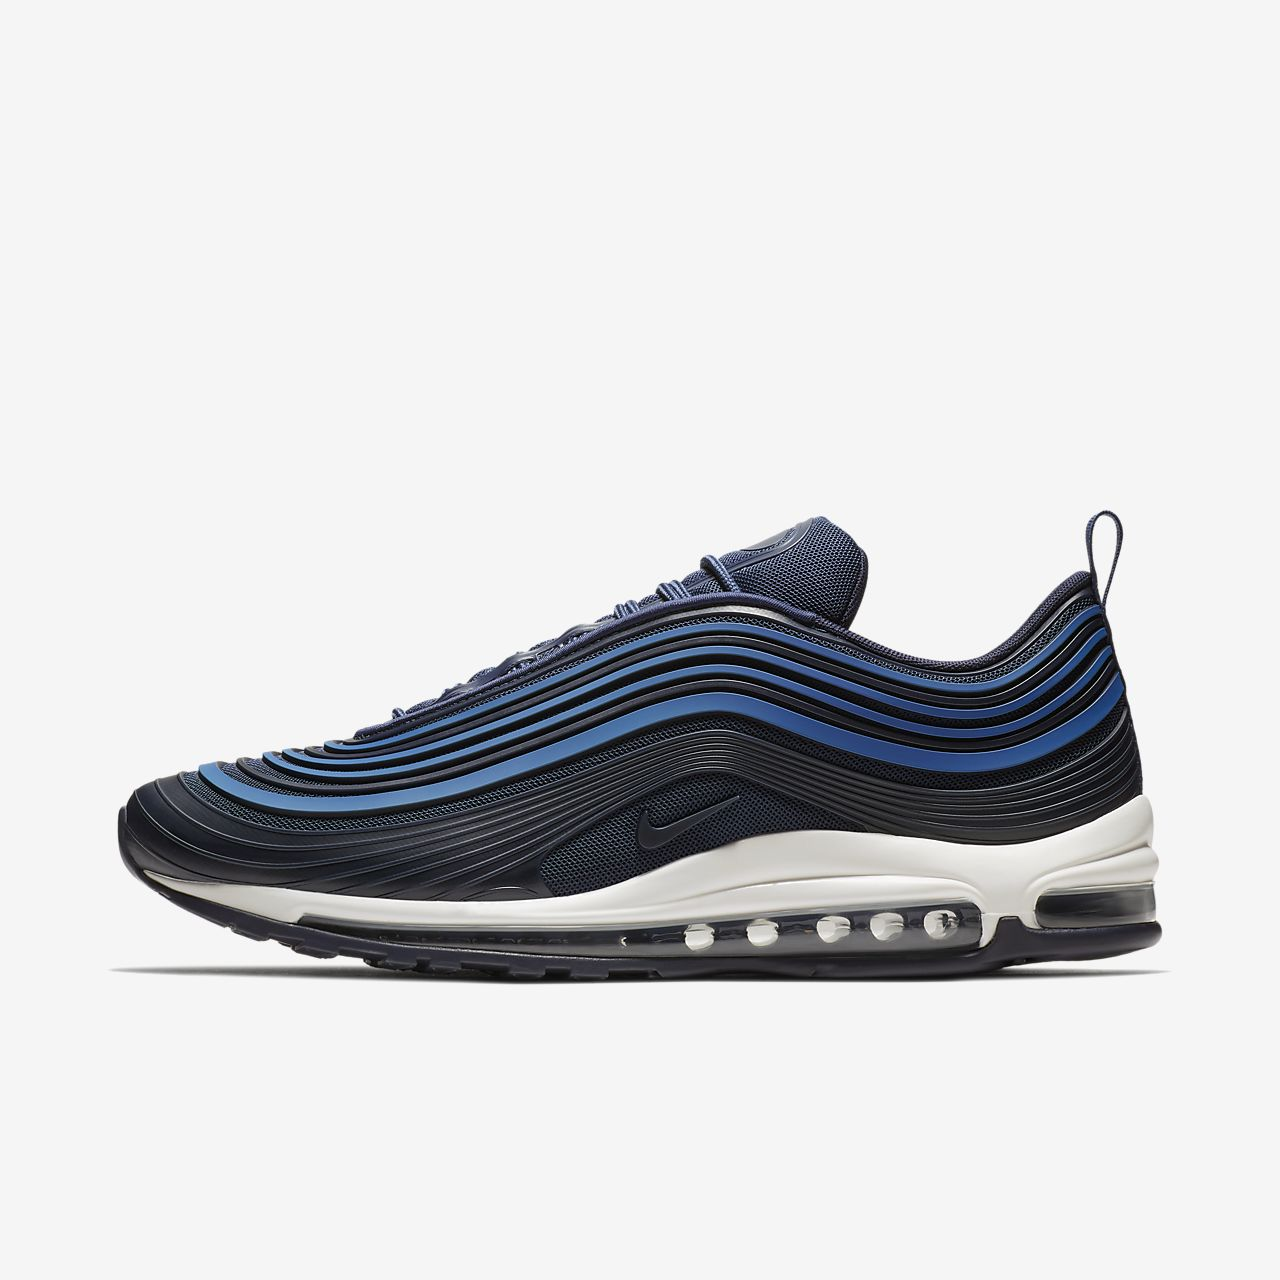 A New Look For The Nike Air Max 97 • KicksOnFire